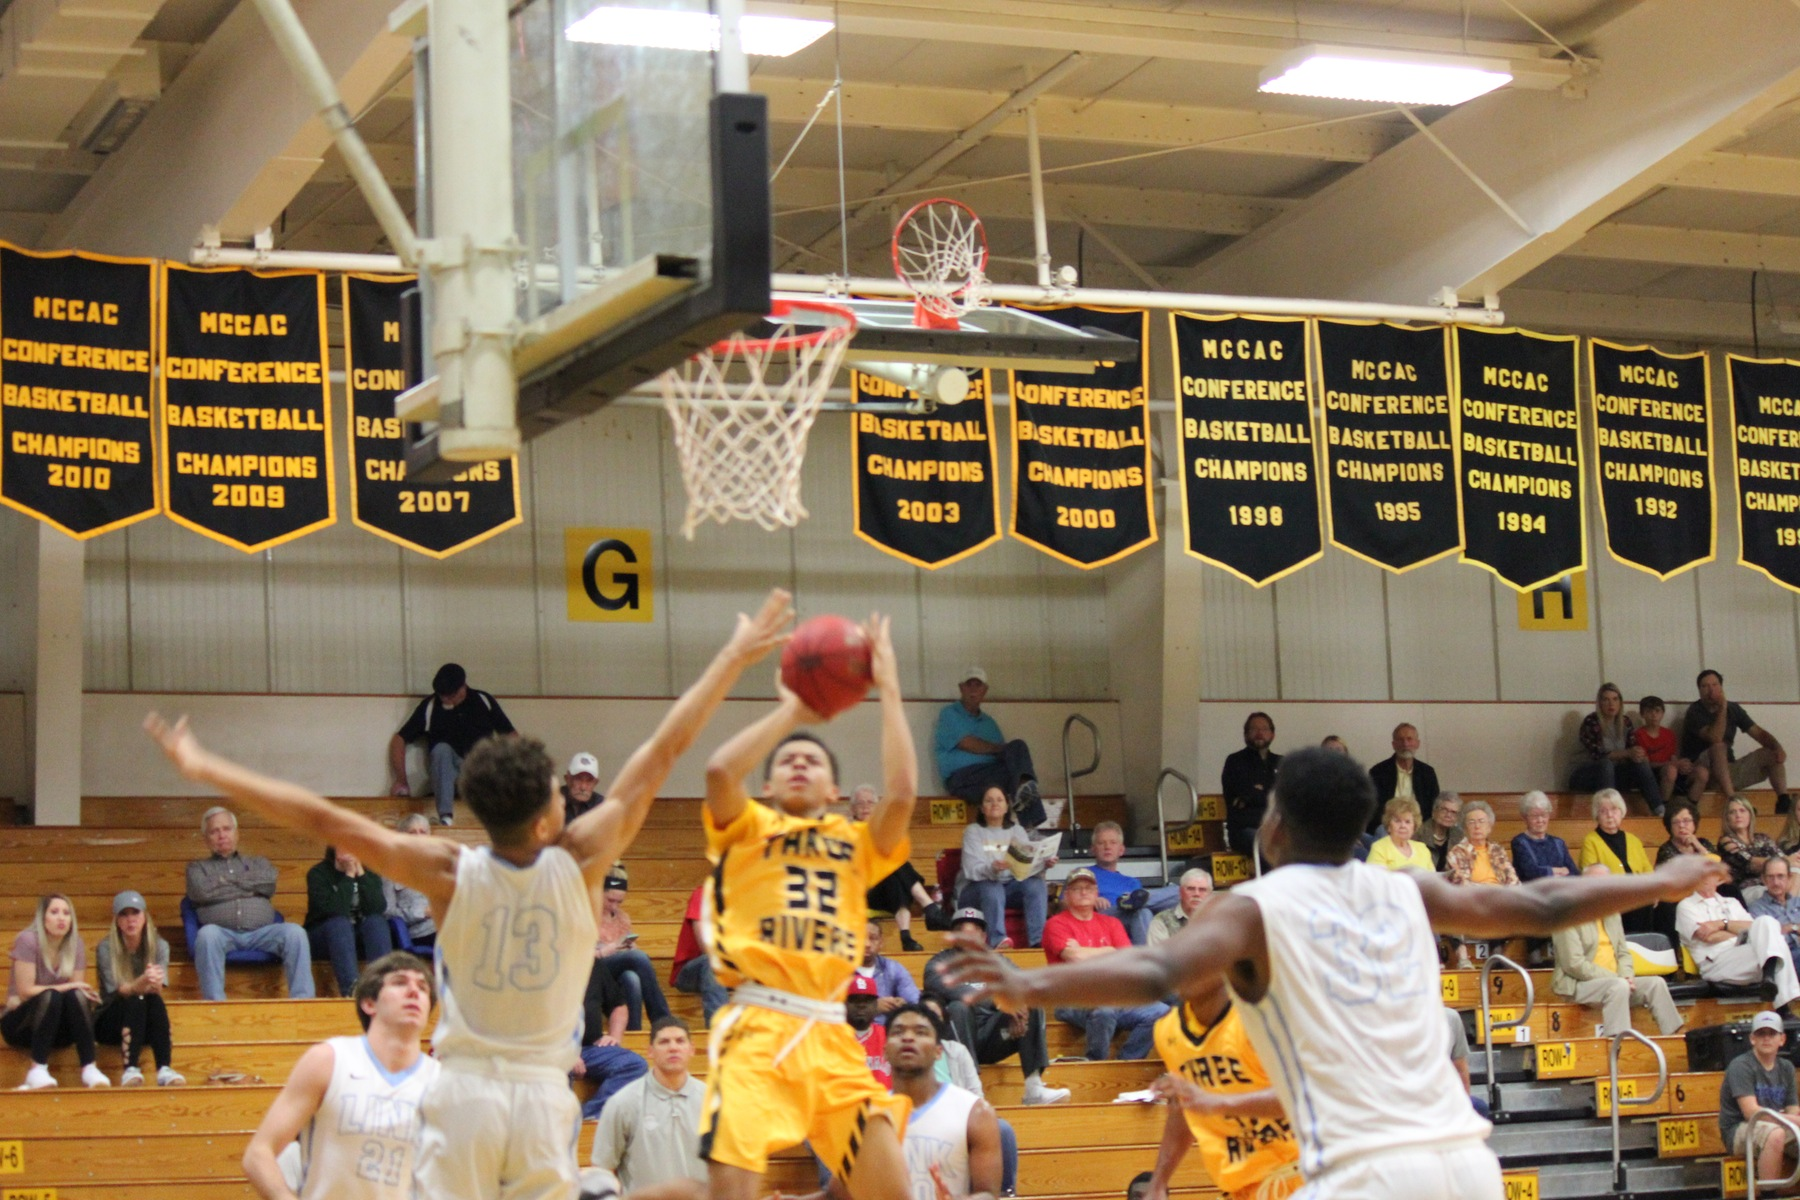 Wilson's free throws with 20 seconds left lift Raiders to 1st win